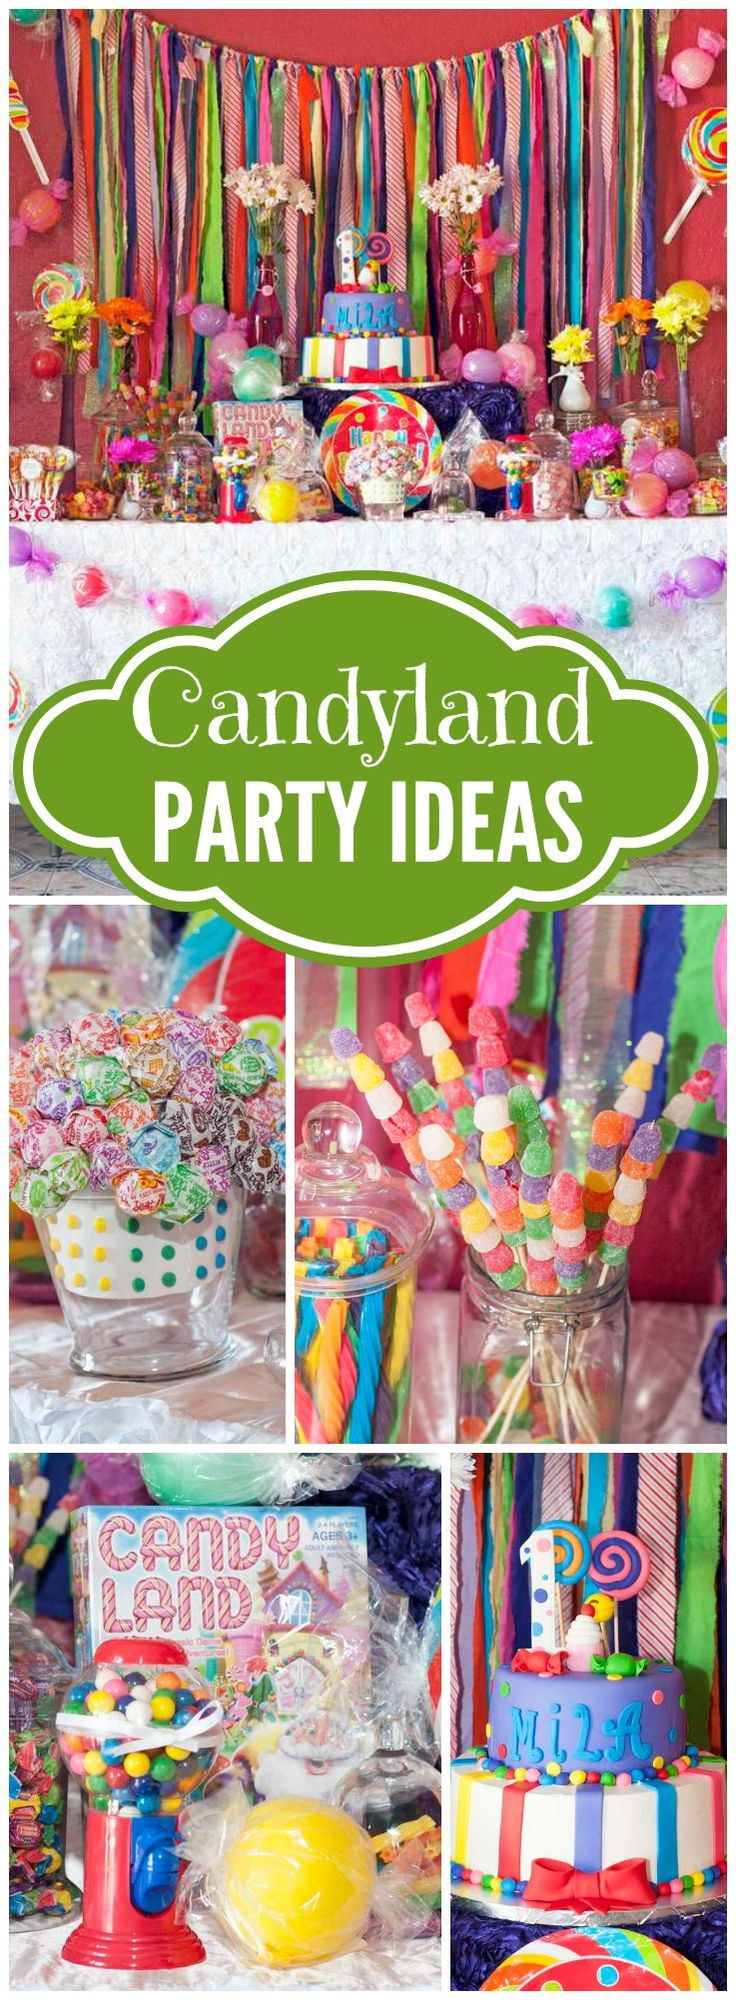 """Candyland / Birthday """"Mila's 1st Candyland"""" in 2019"""